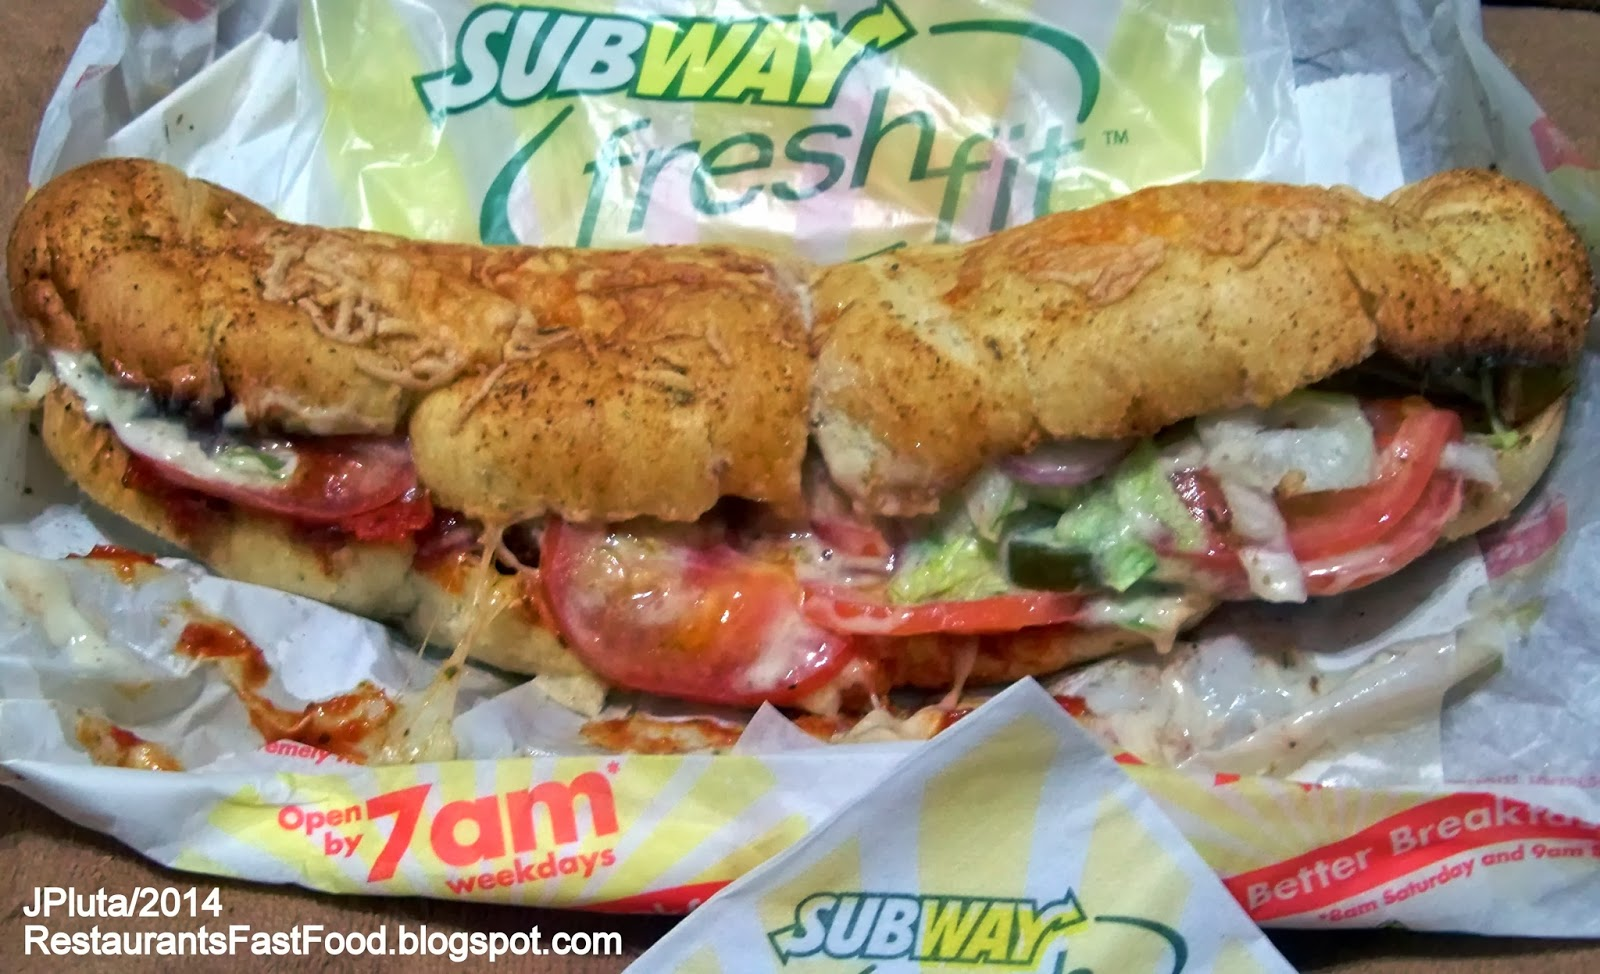 Fast Food Restaurants In South Beach Miami